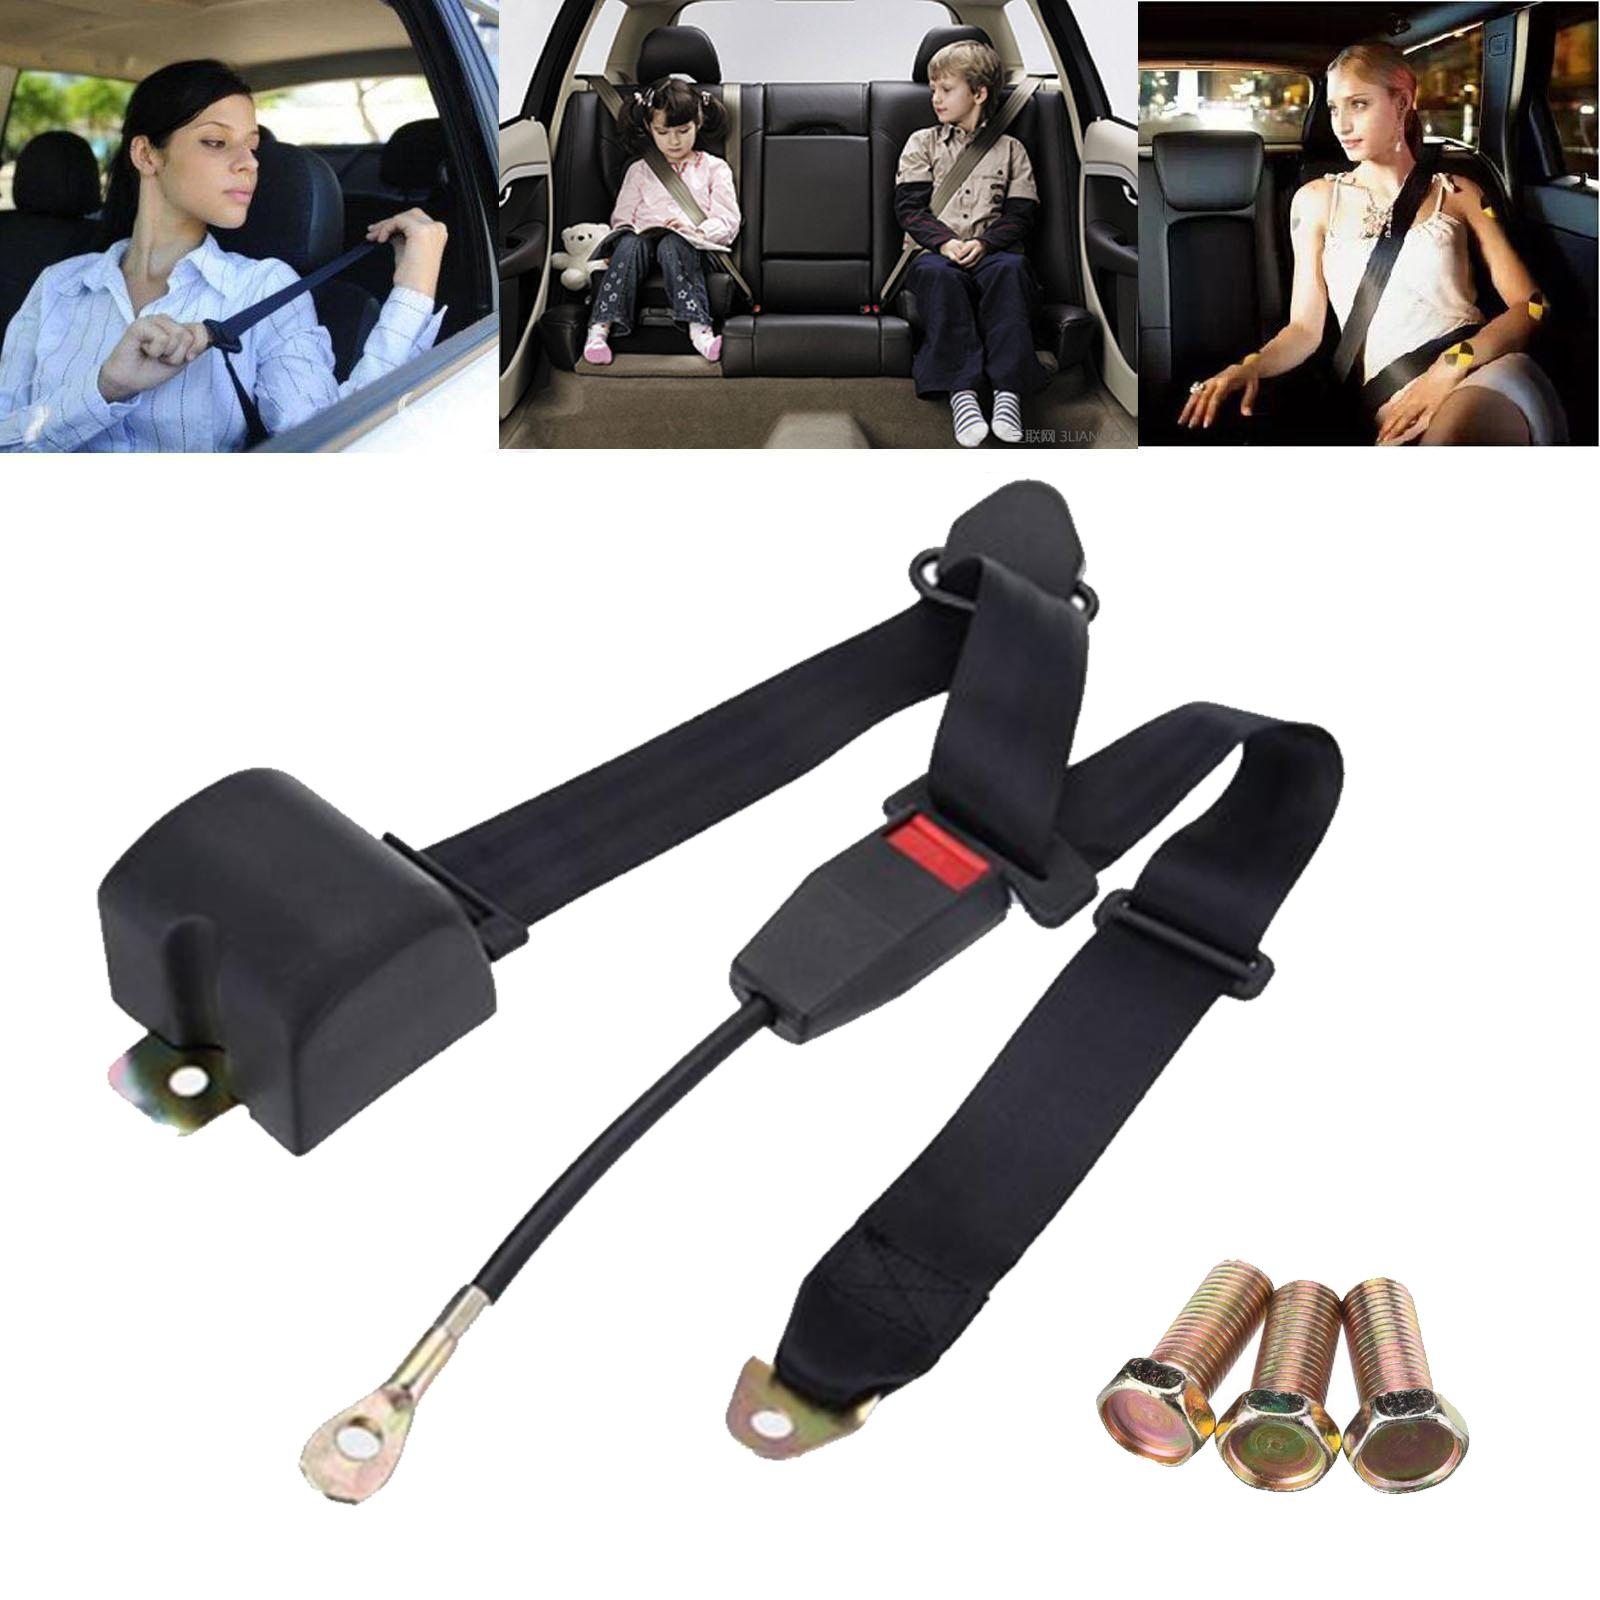 Car Passenger Car 3 Adjustable Point Automatic Driver Seat Belt Bus Automatic Shrink Seat Belt Before and After Universal